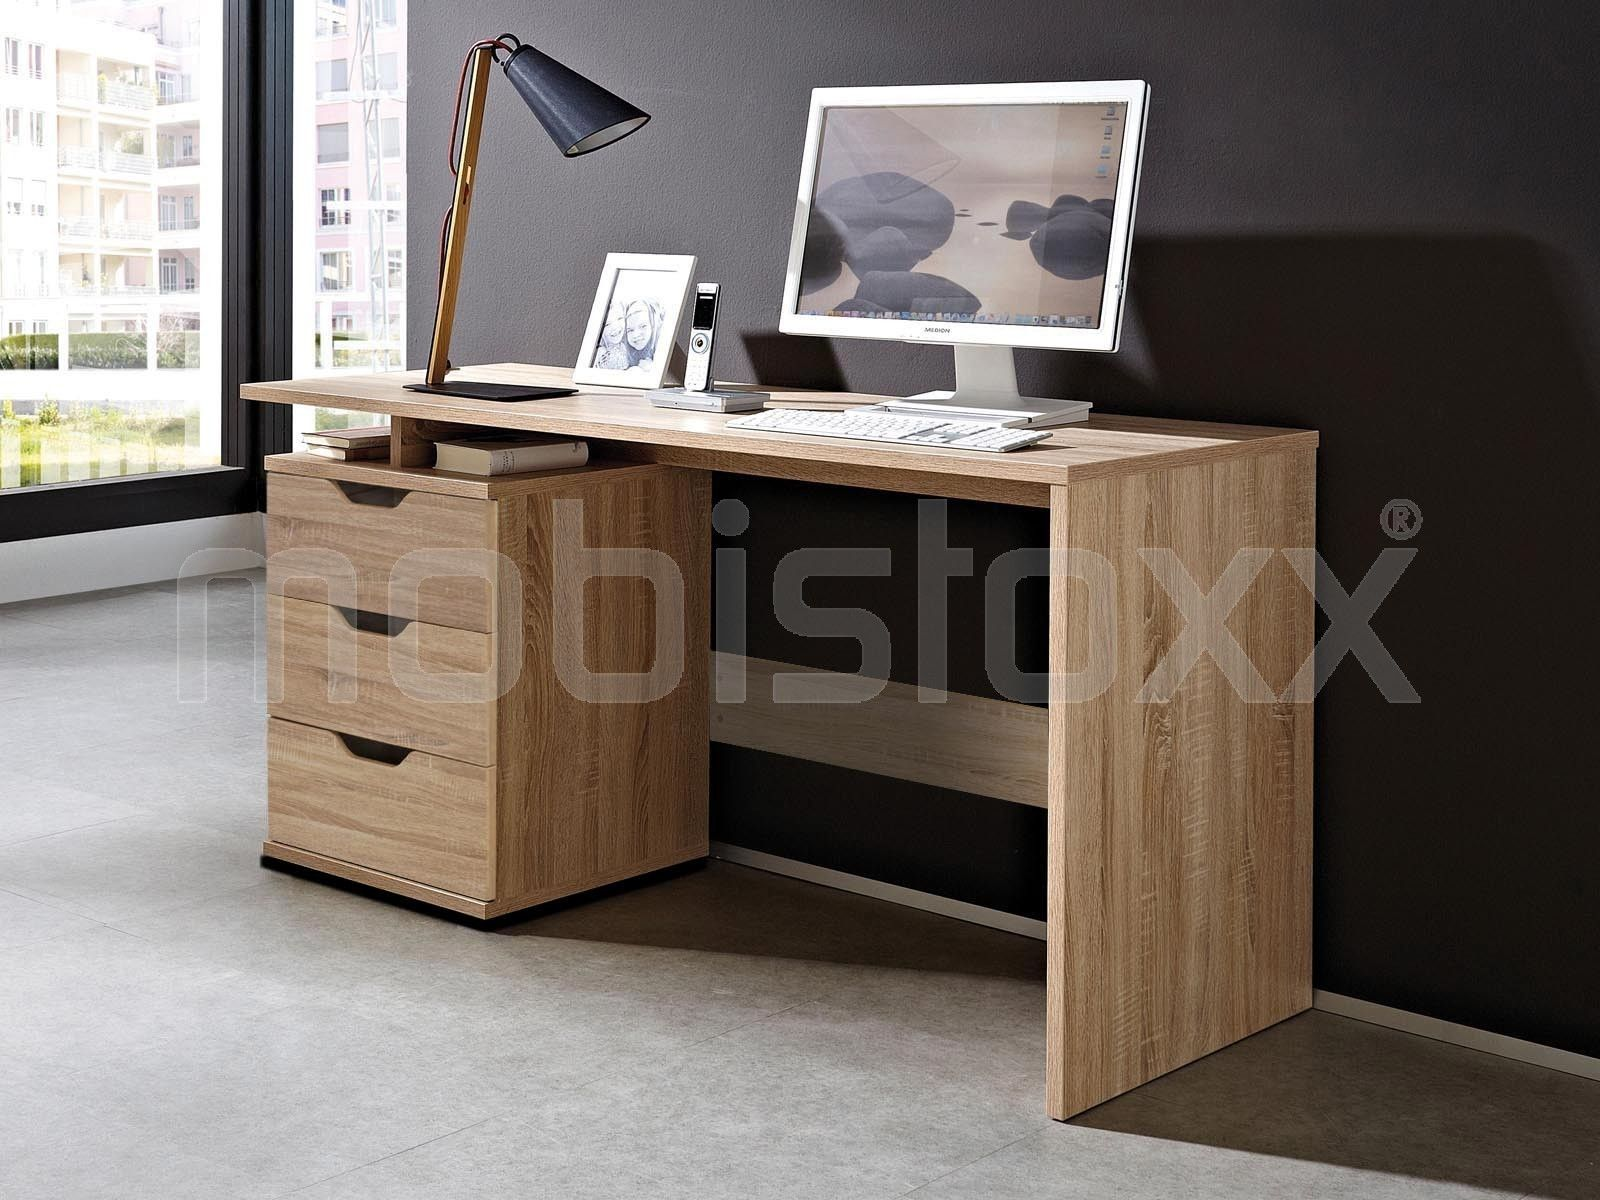 Bureau Cambridge 3 Lades Sonoma 1 Avec Images Meuble Imprimante Meuble Mobilier De Salon